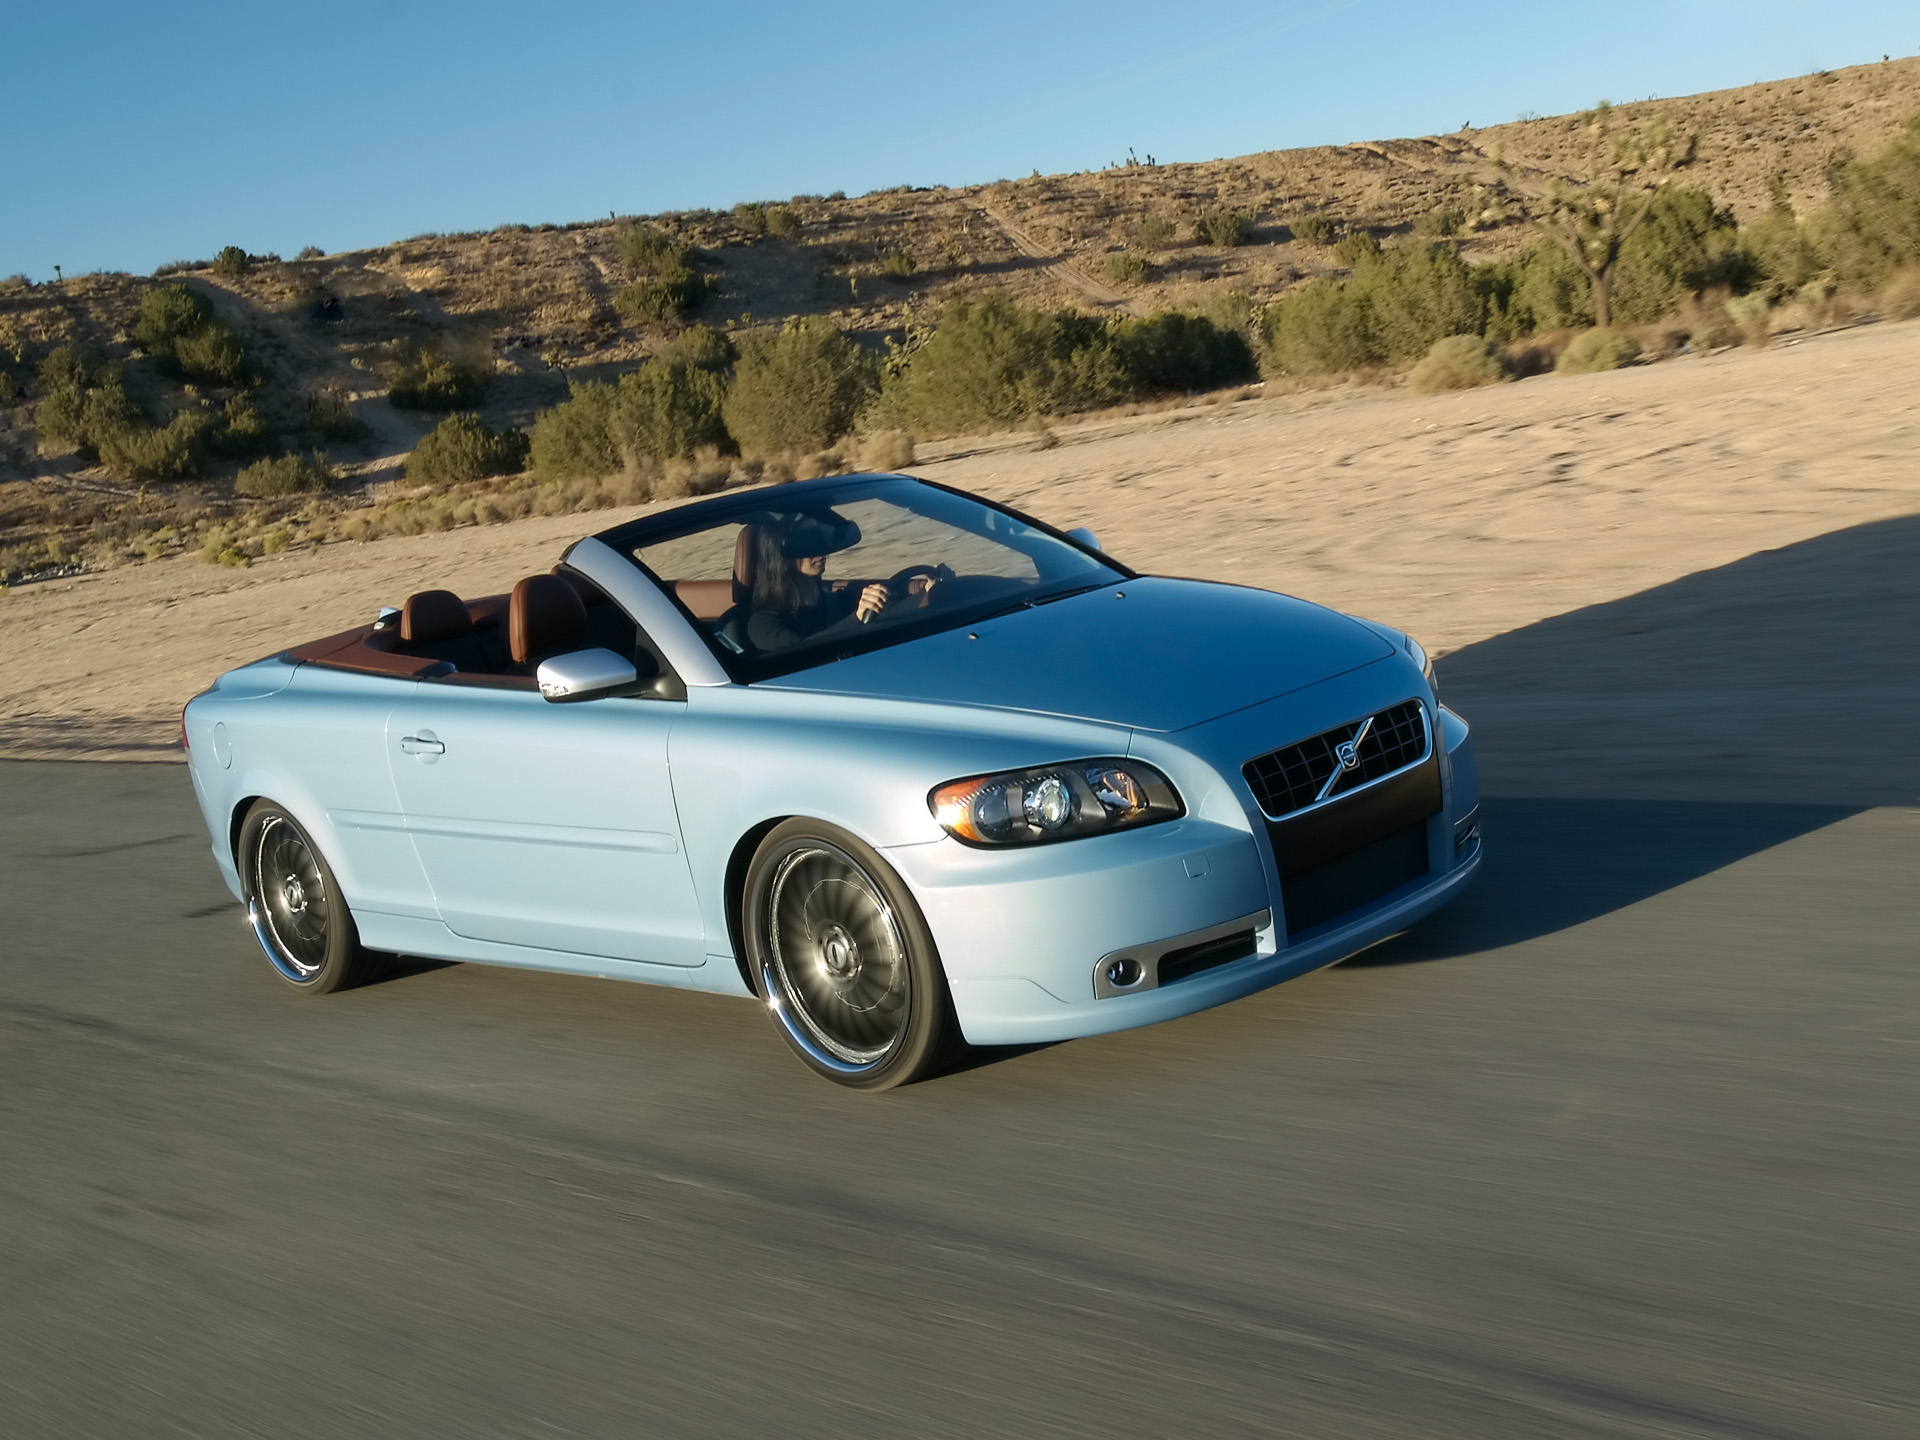 Caresto Volvo C70 photo 51189